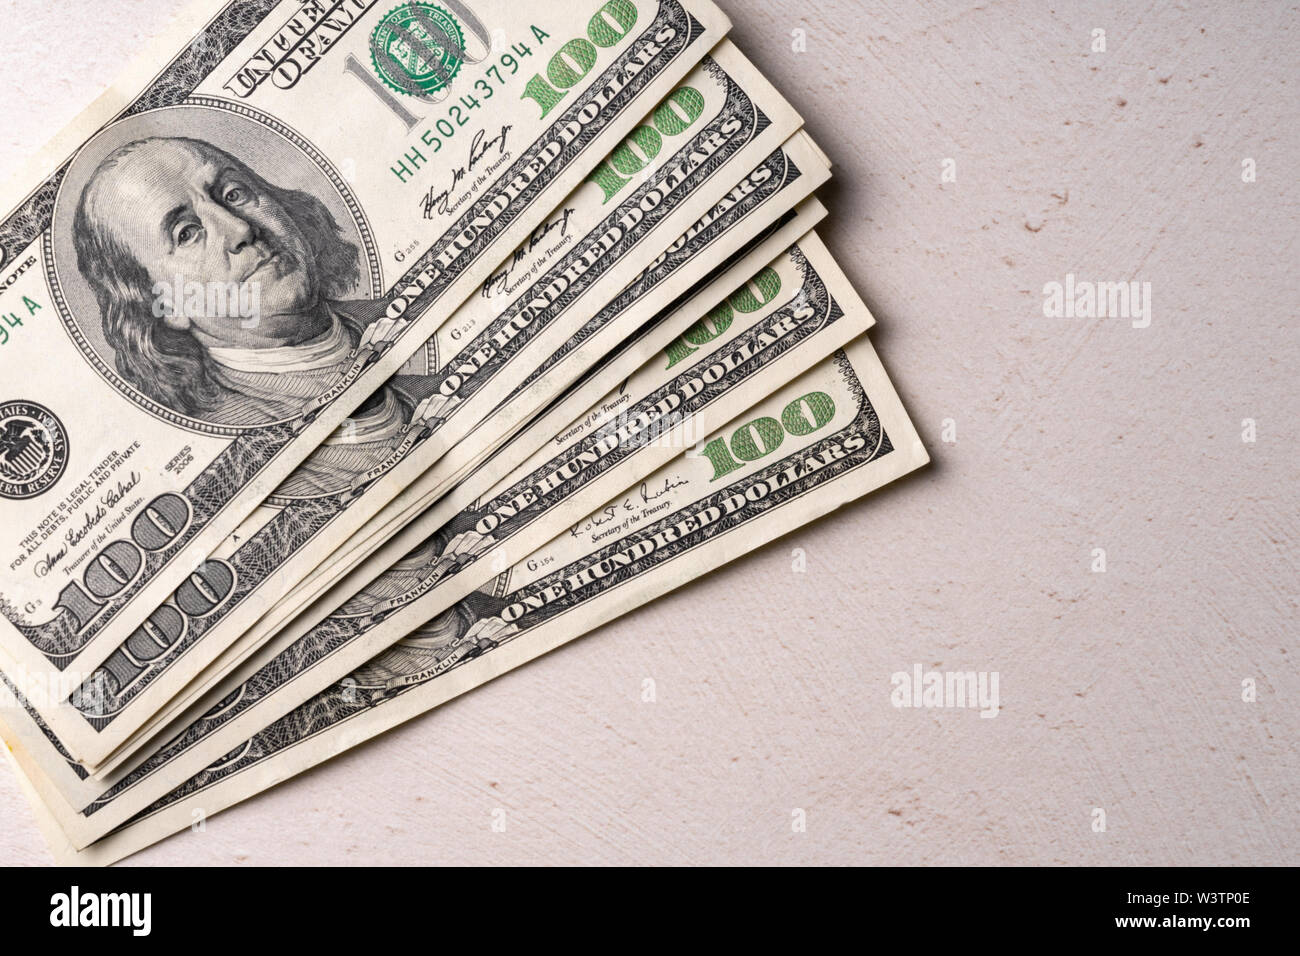 A fragment of a bill of 100 US dollars.Several bills on a white background - Stock Image